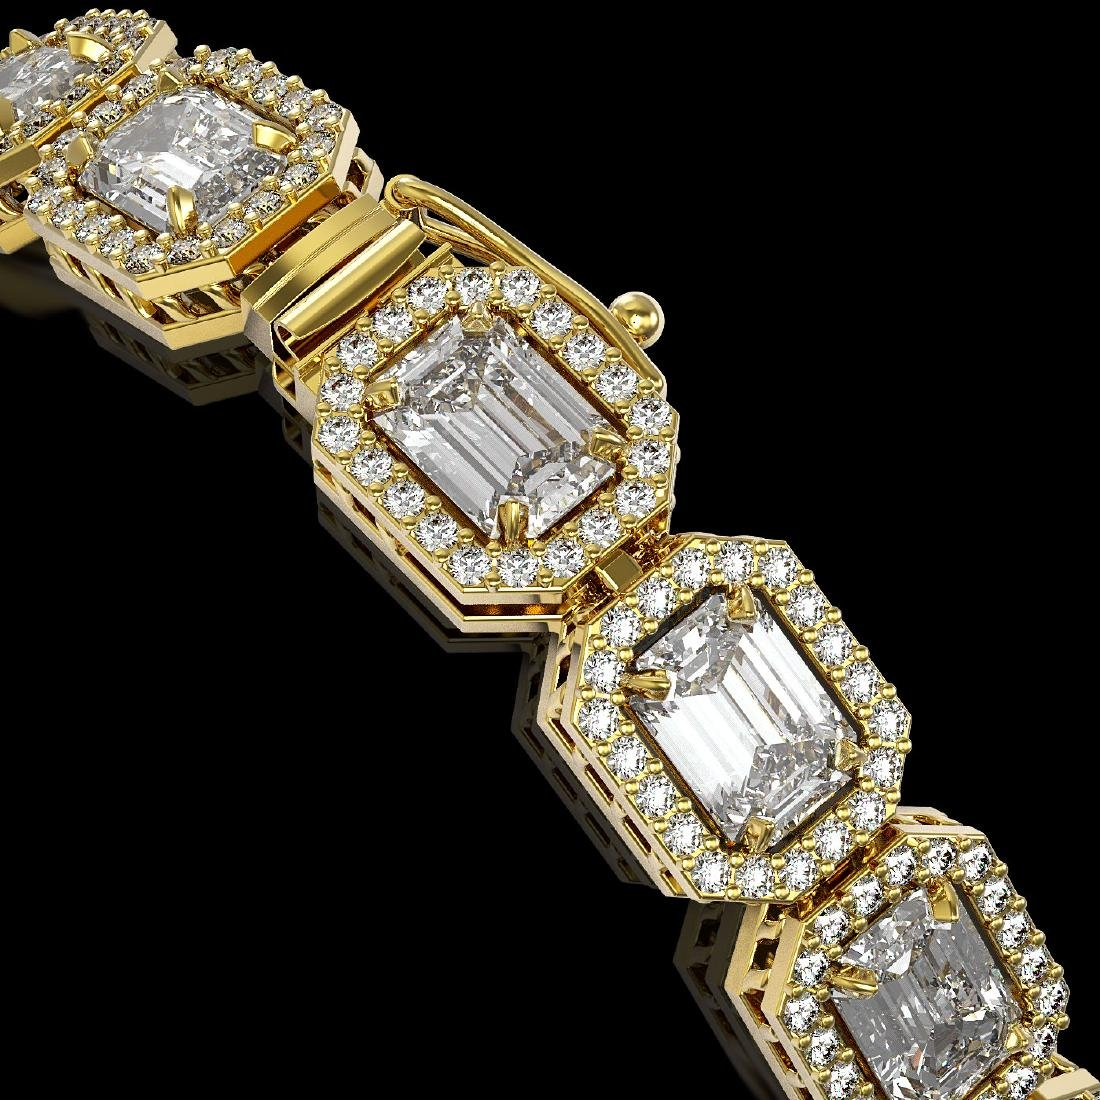 14.57 CTW Emerald Cut Diamond Designer Bracelet 18K - 3